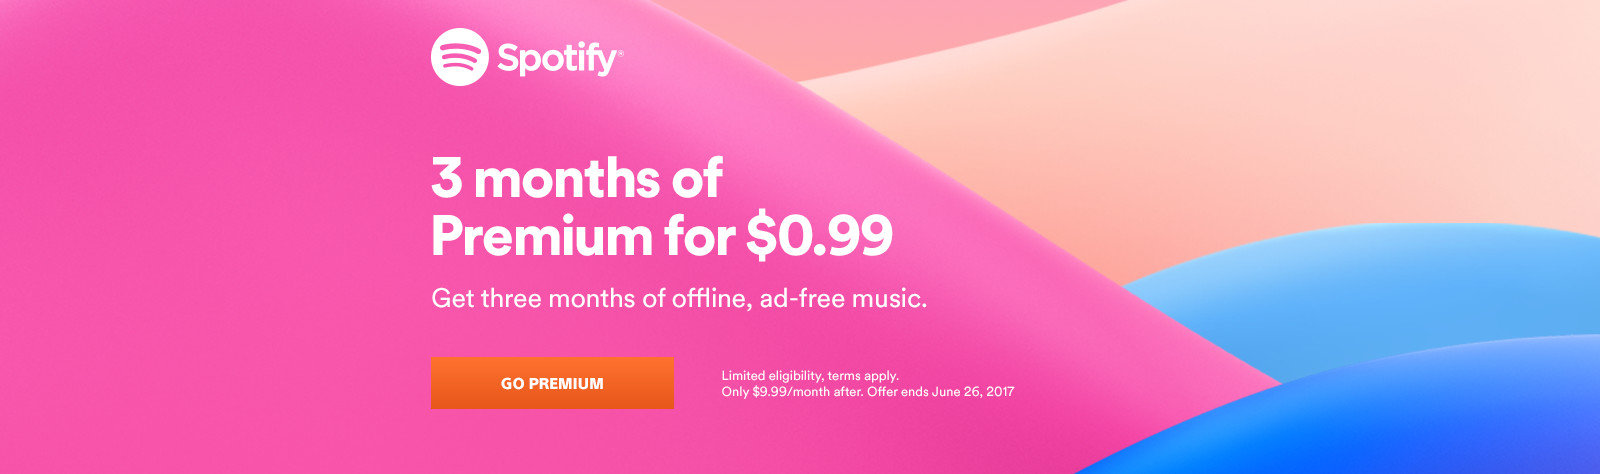 playstation-music-spotify-3-months-offer-banner-01-us-16may17